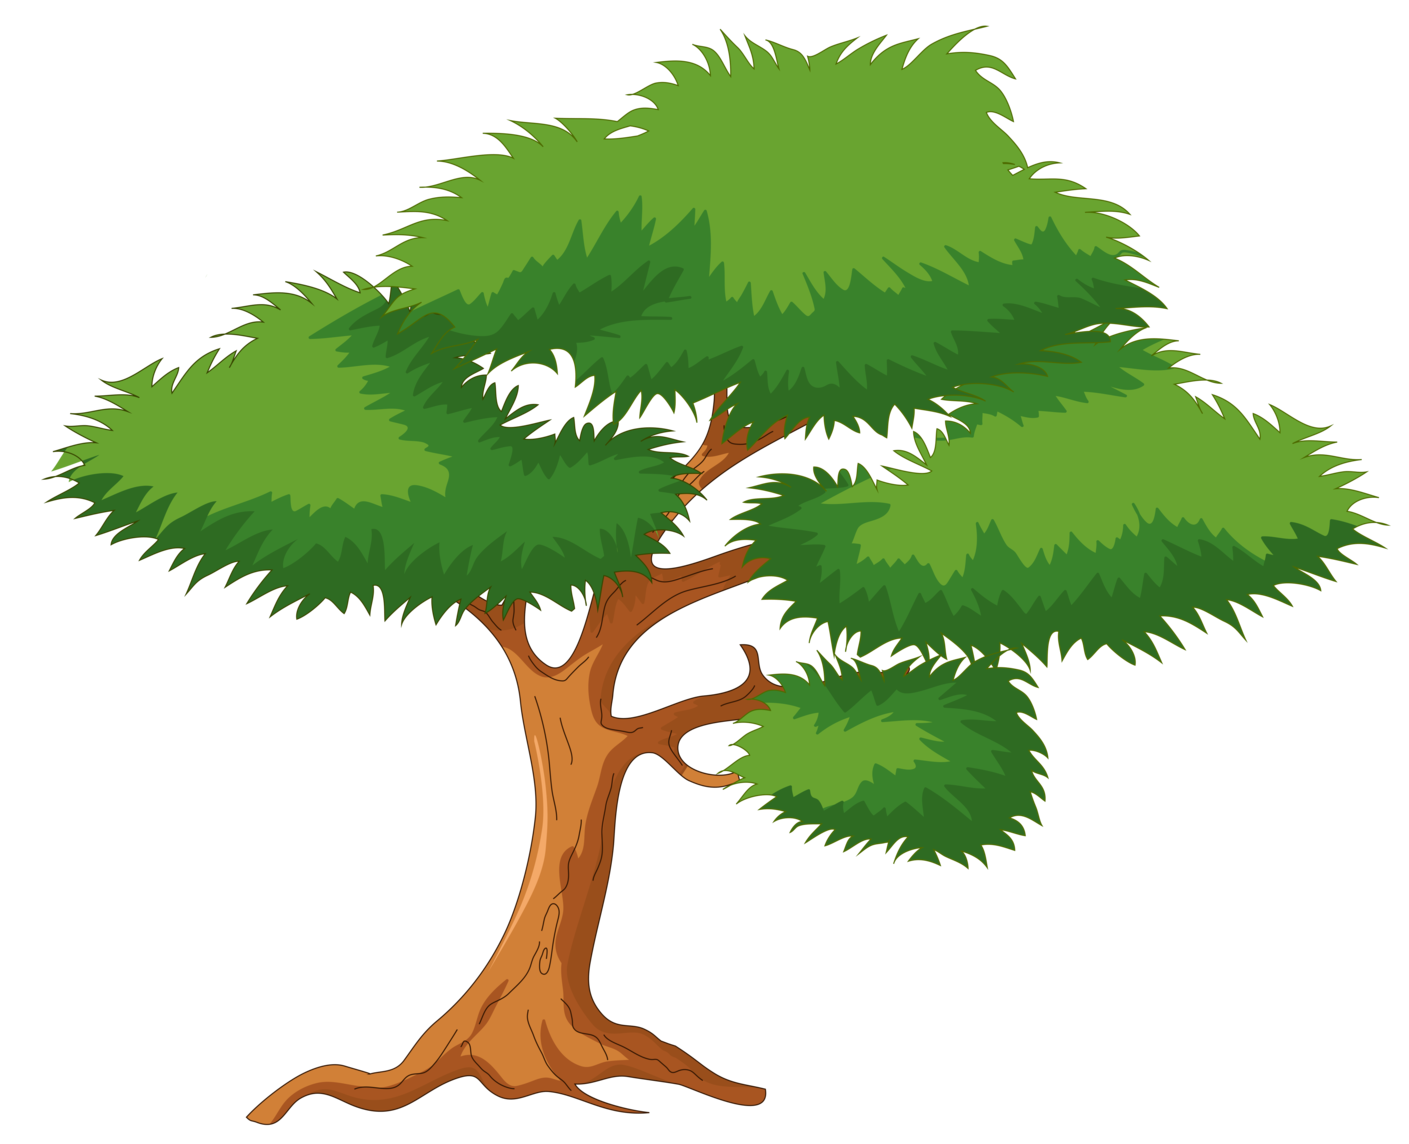 Tree clip art png. Green cartoon